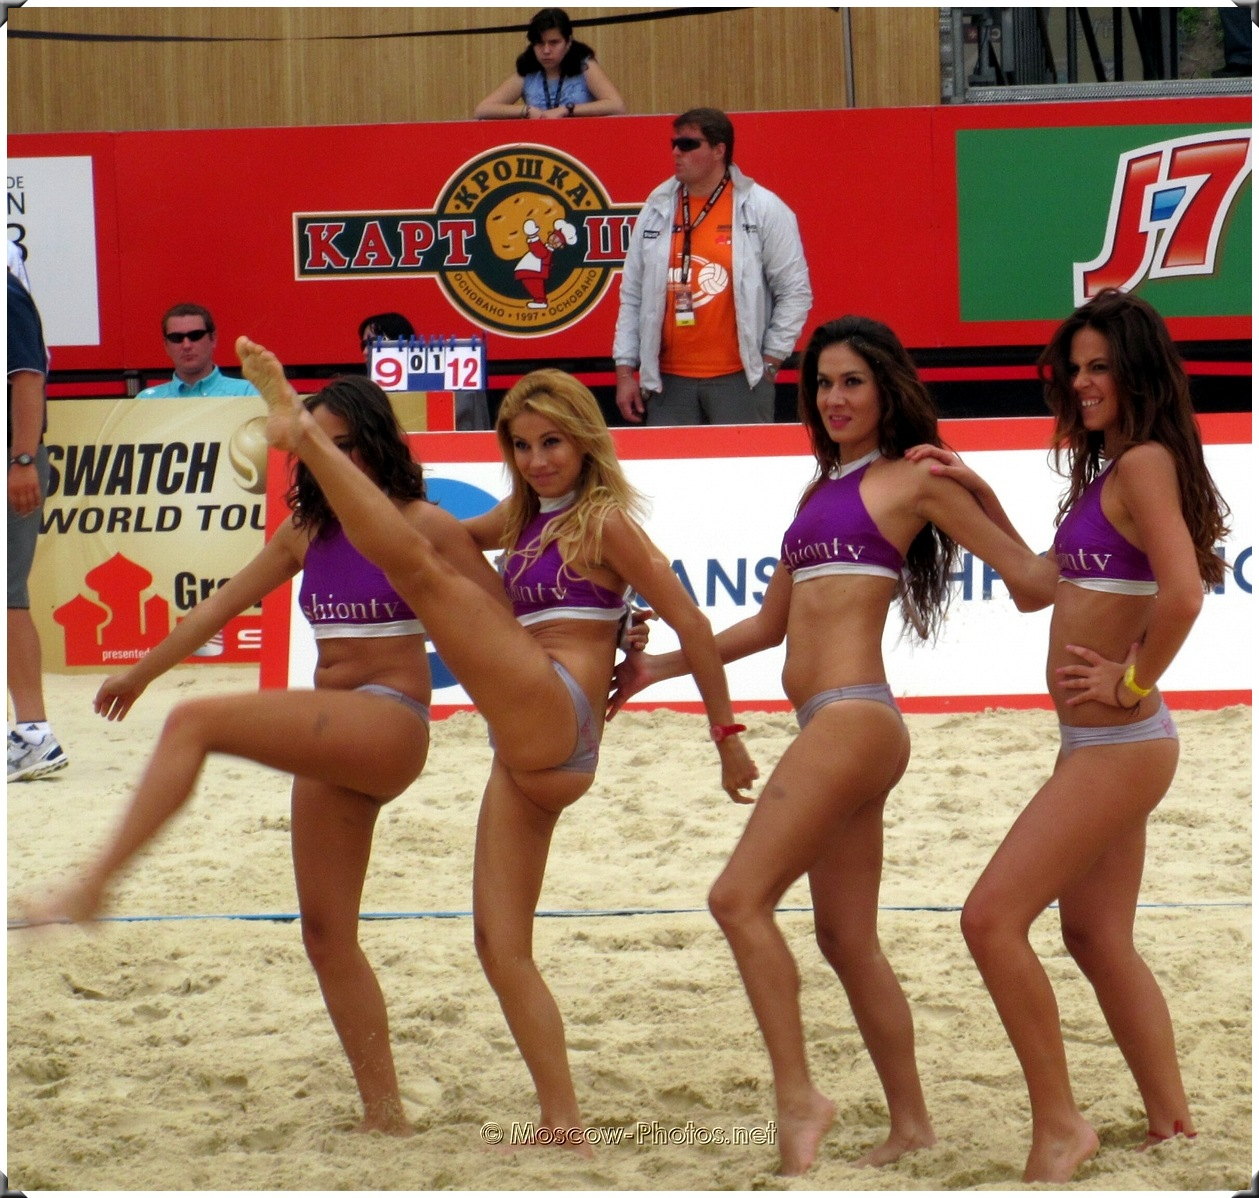 Beach Volley Dancing Bikini Cheerleaders